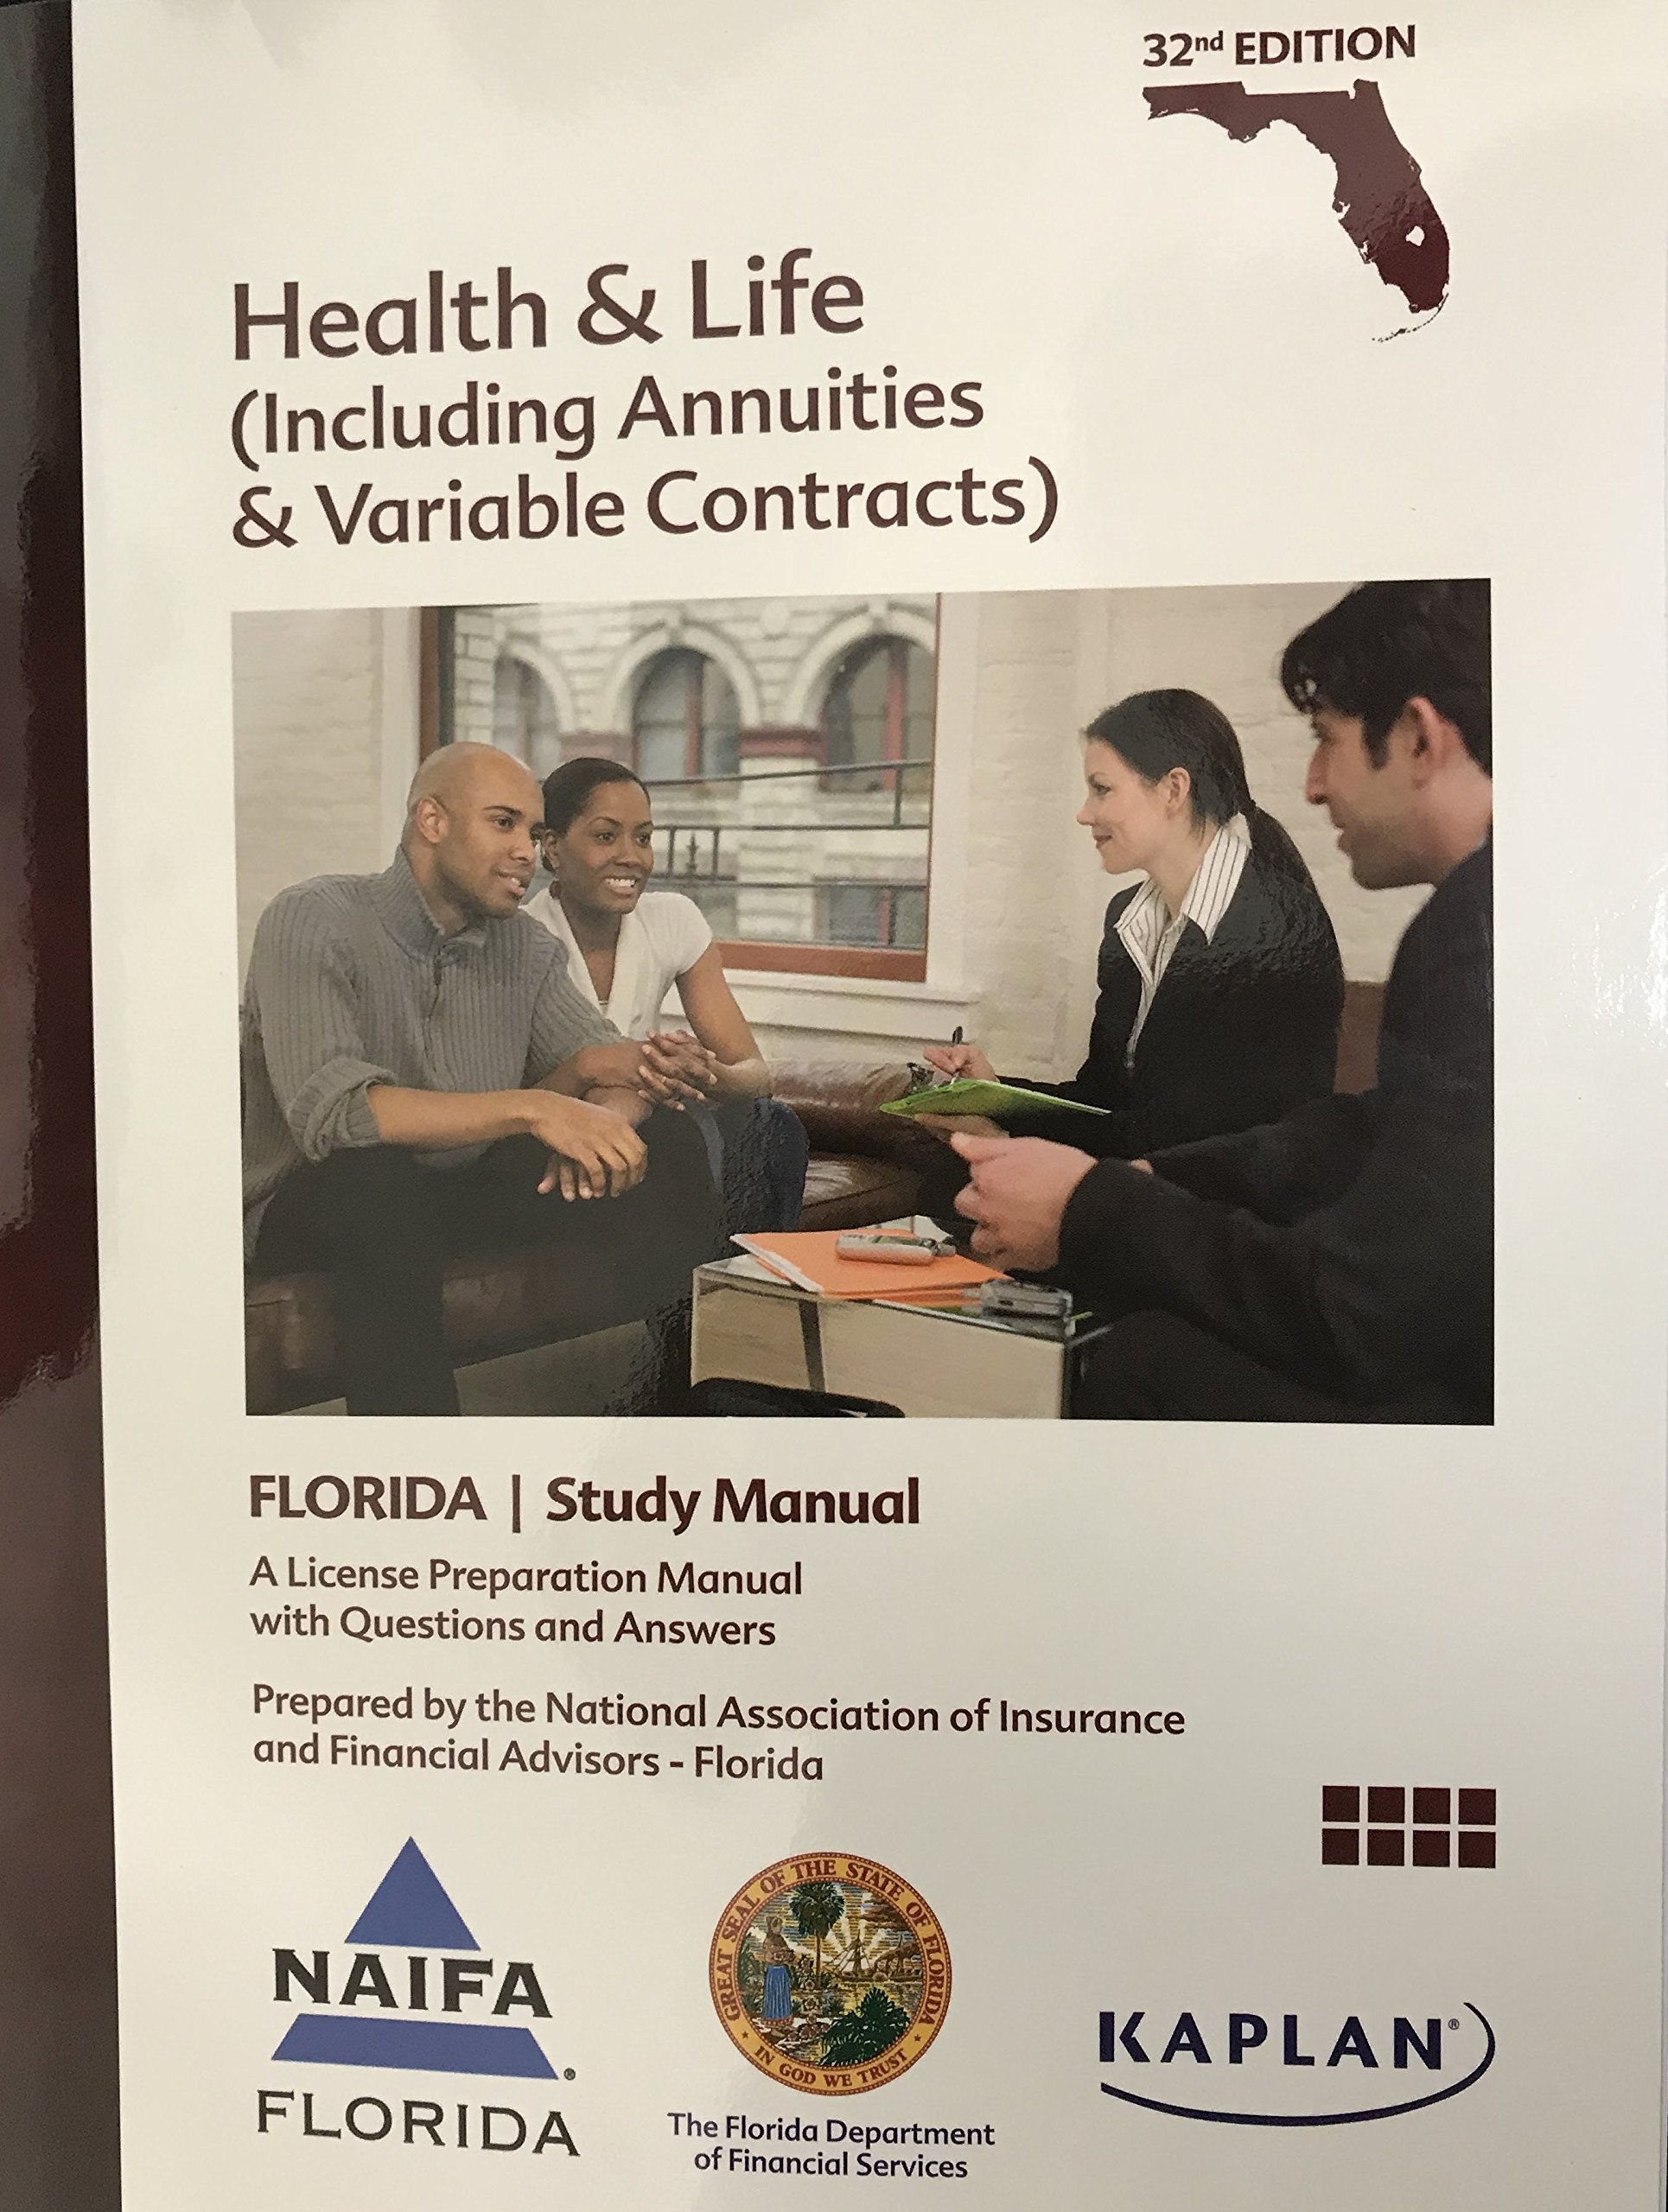 Health & Life (Including Annuities & Variable Contracts